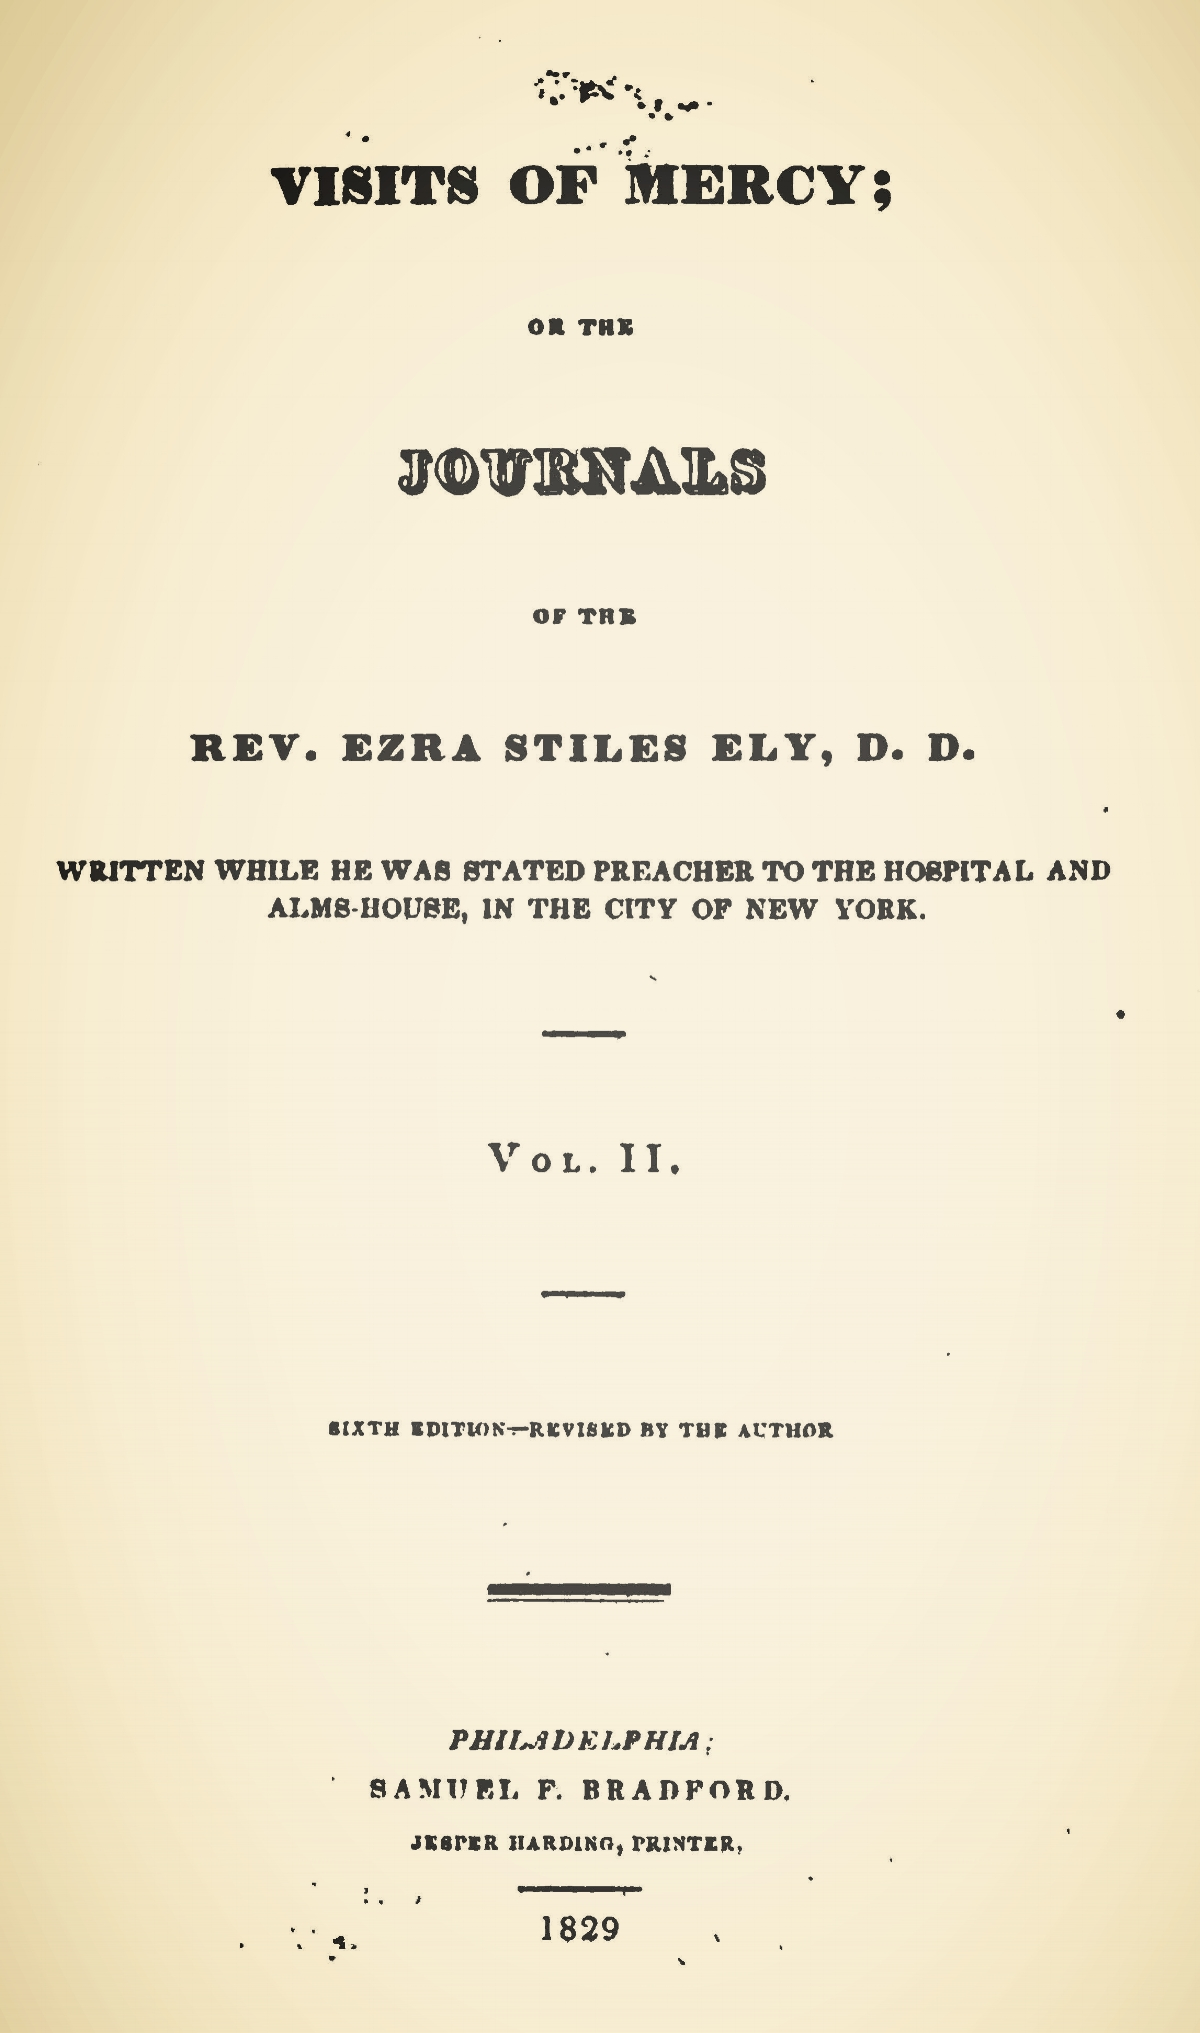 Ely, Ezra Stiles, Visits of Mercy; or, The Journals of Ezra Stiles Ely, D.D., Vol. 2 Title Page.jpg